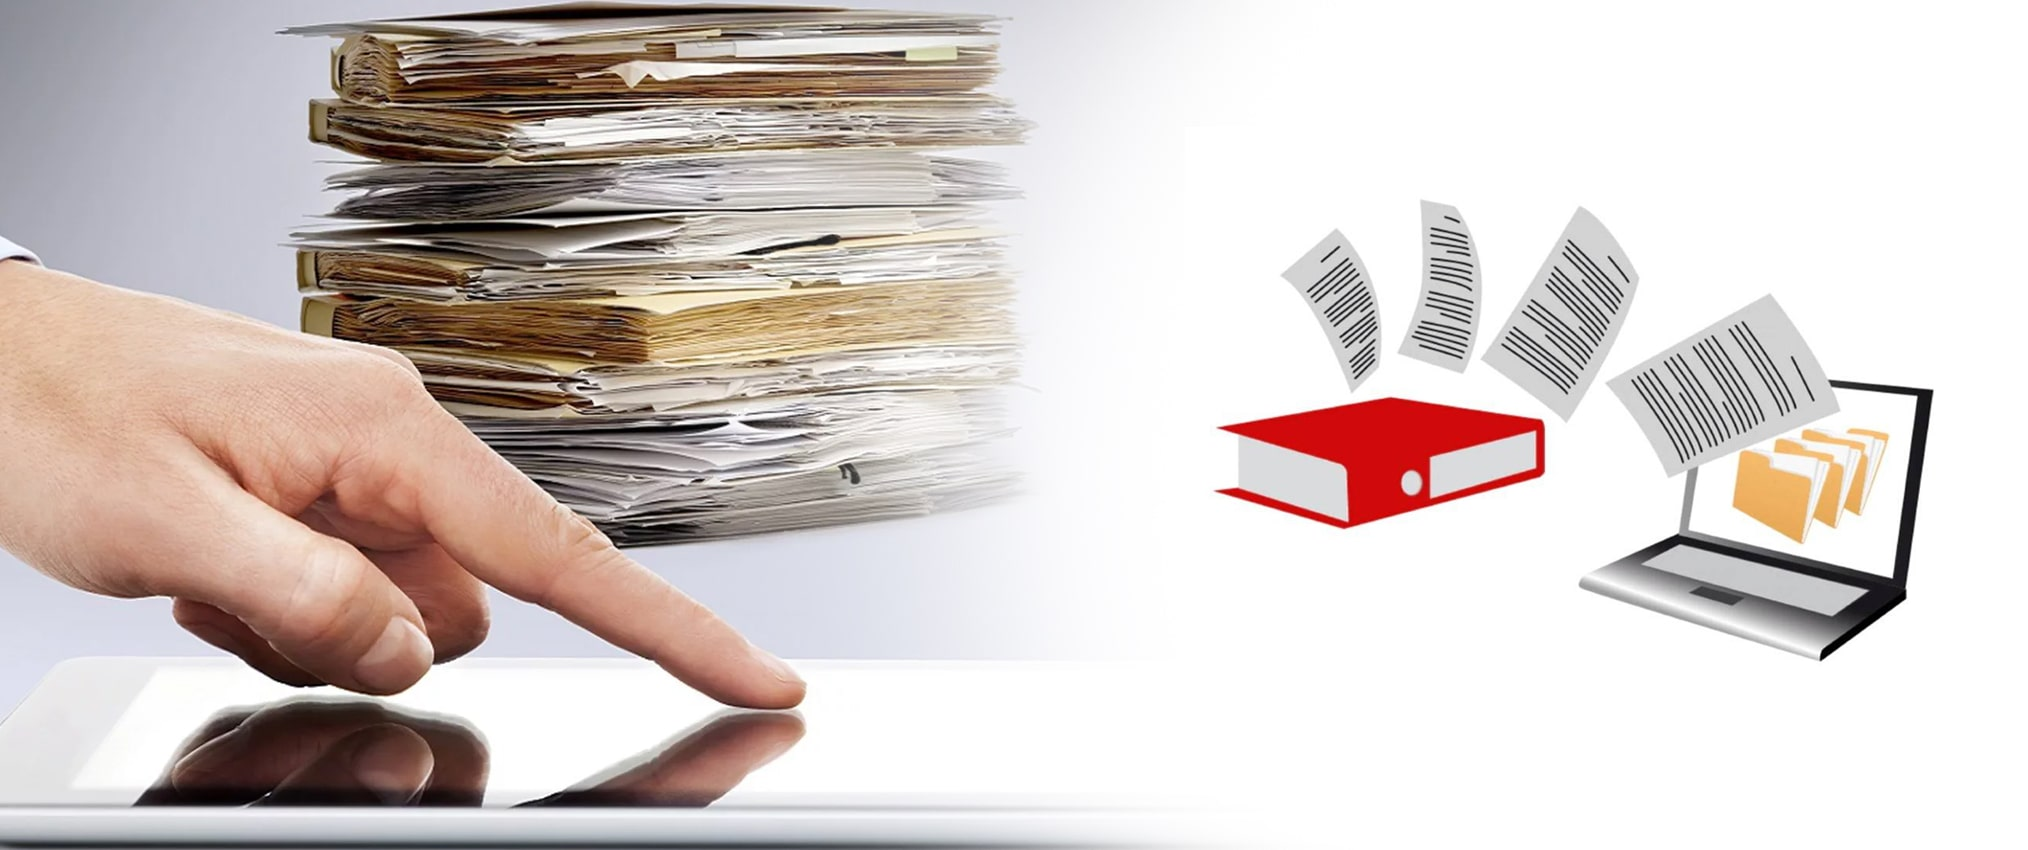 Searching for a solution to your Document Digitization